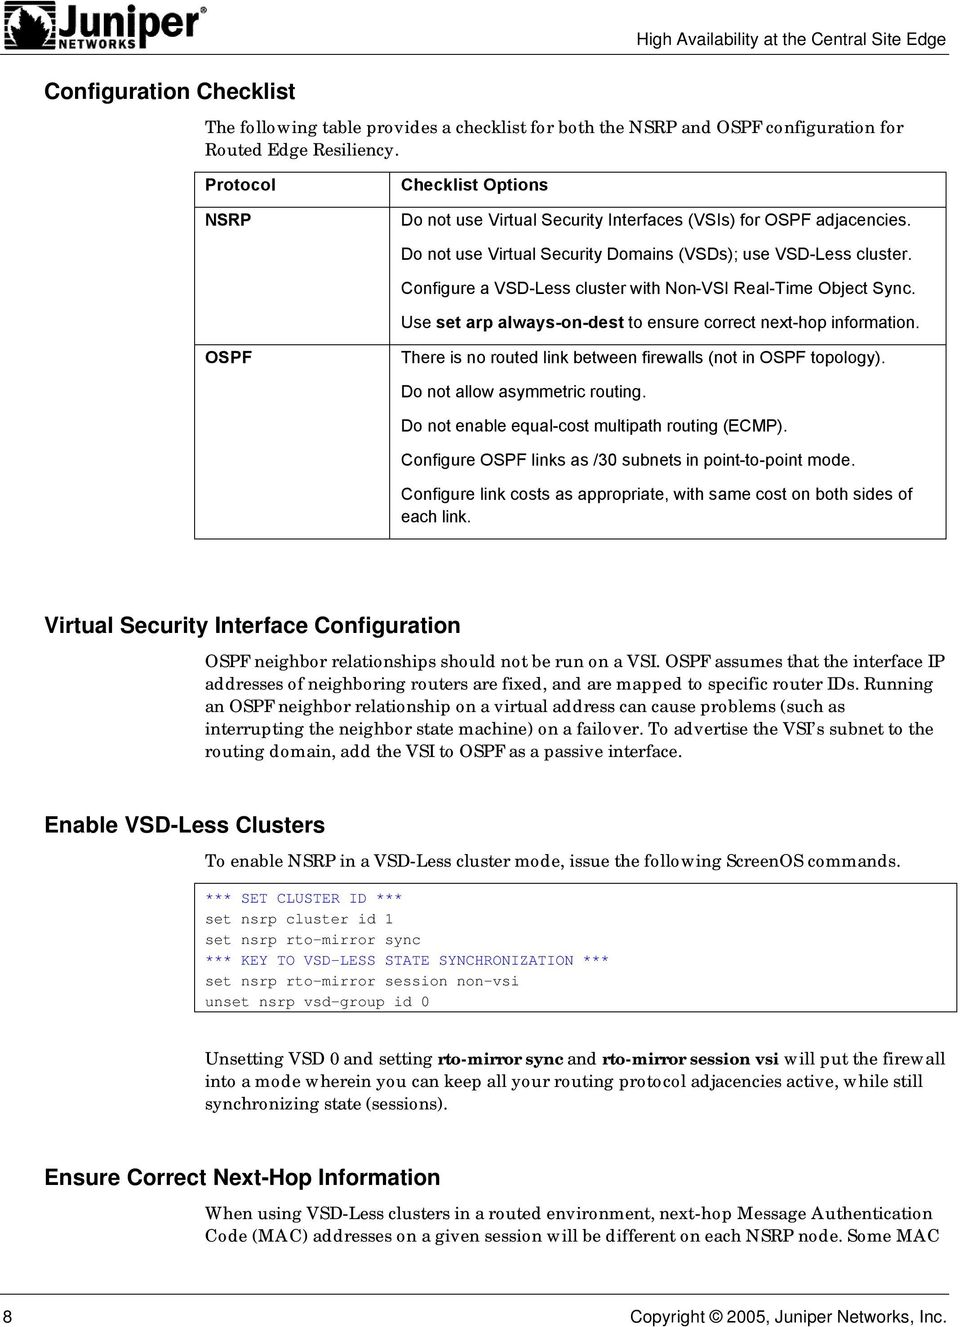 High Availability at the Central Site Edge - PDF